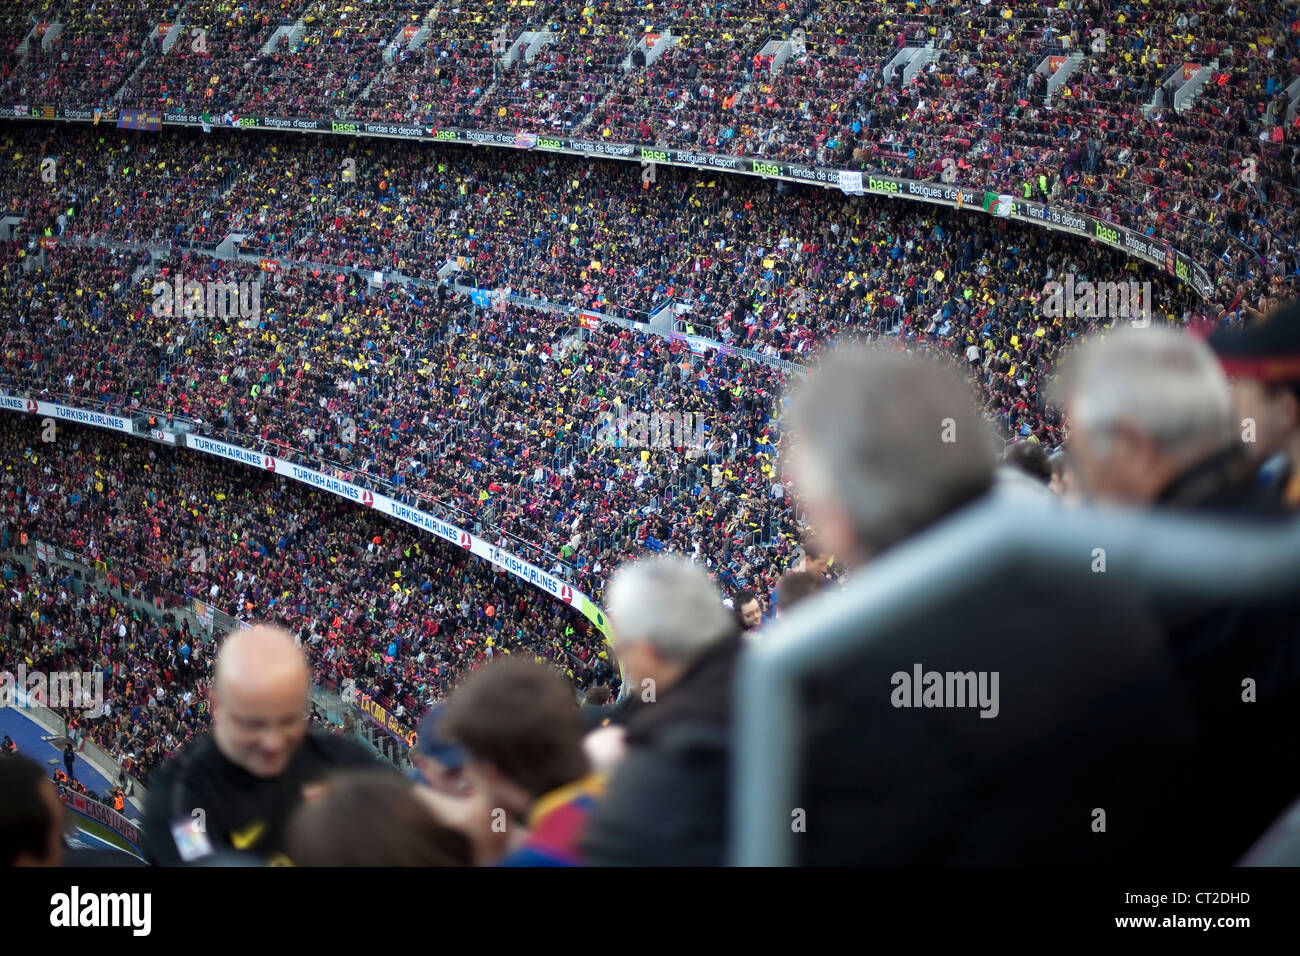 Crowd of people in the F.C. Barcelona stadium, Camp Nou, during a match against Real Madrid - Stock Image